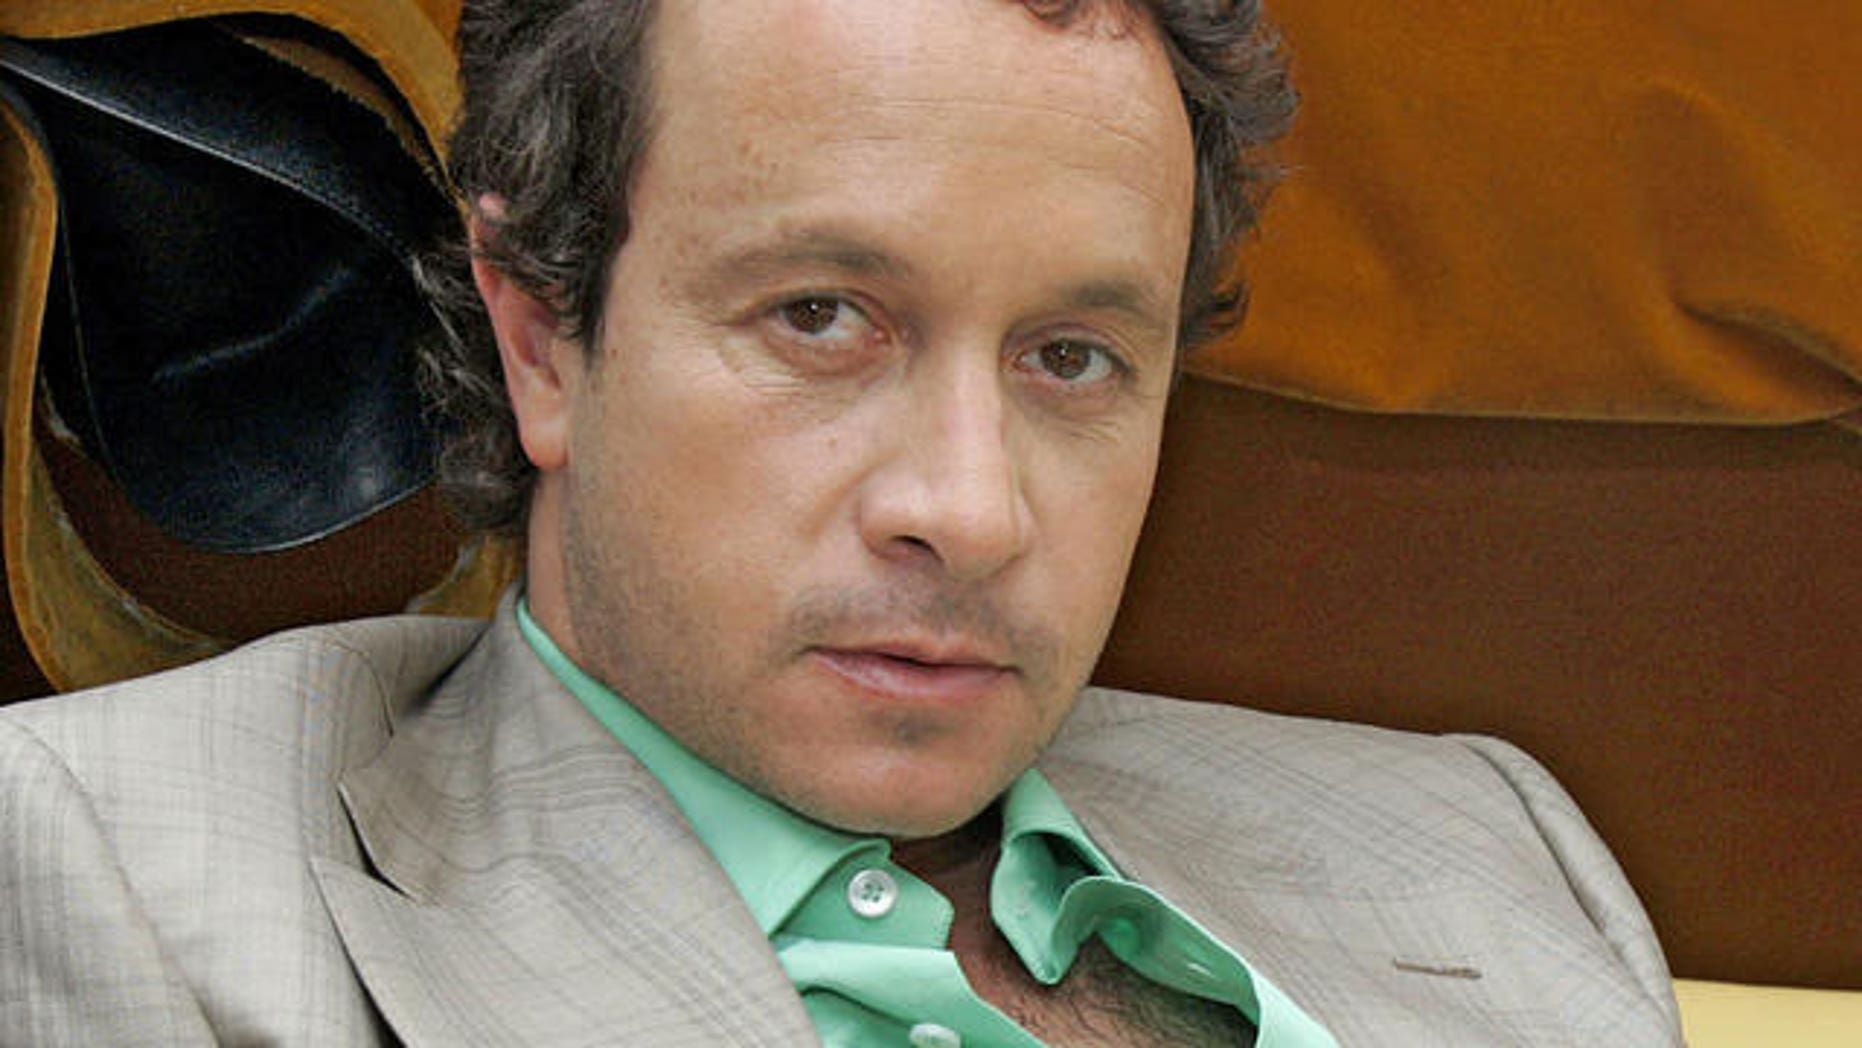 Comedian Pauly Shore says his new mockumentary is a funny take on a serious subject, that of international adoption.